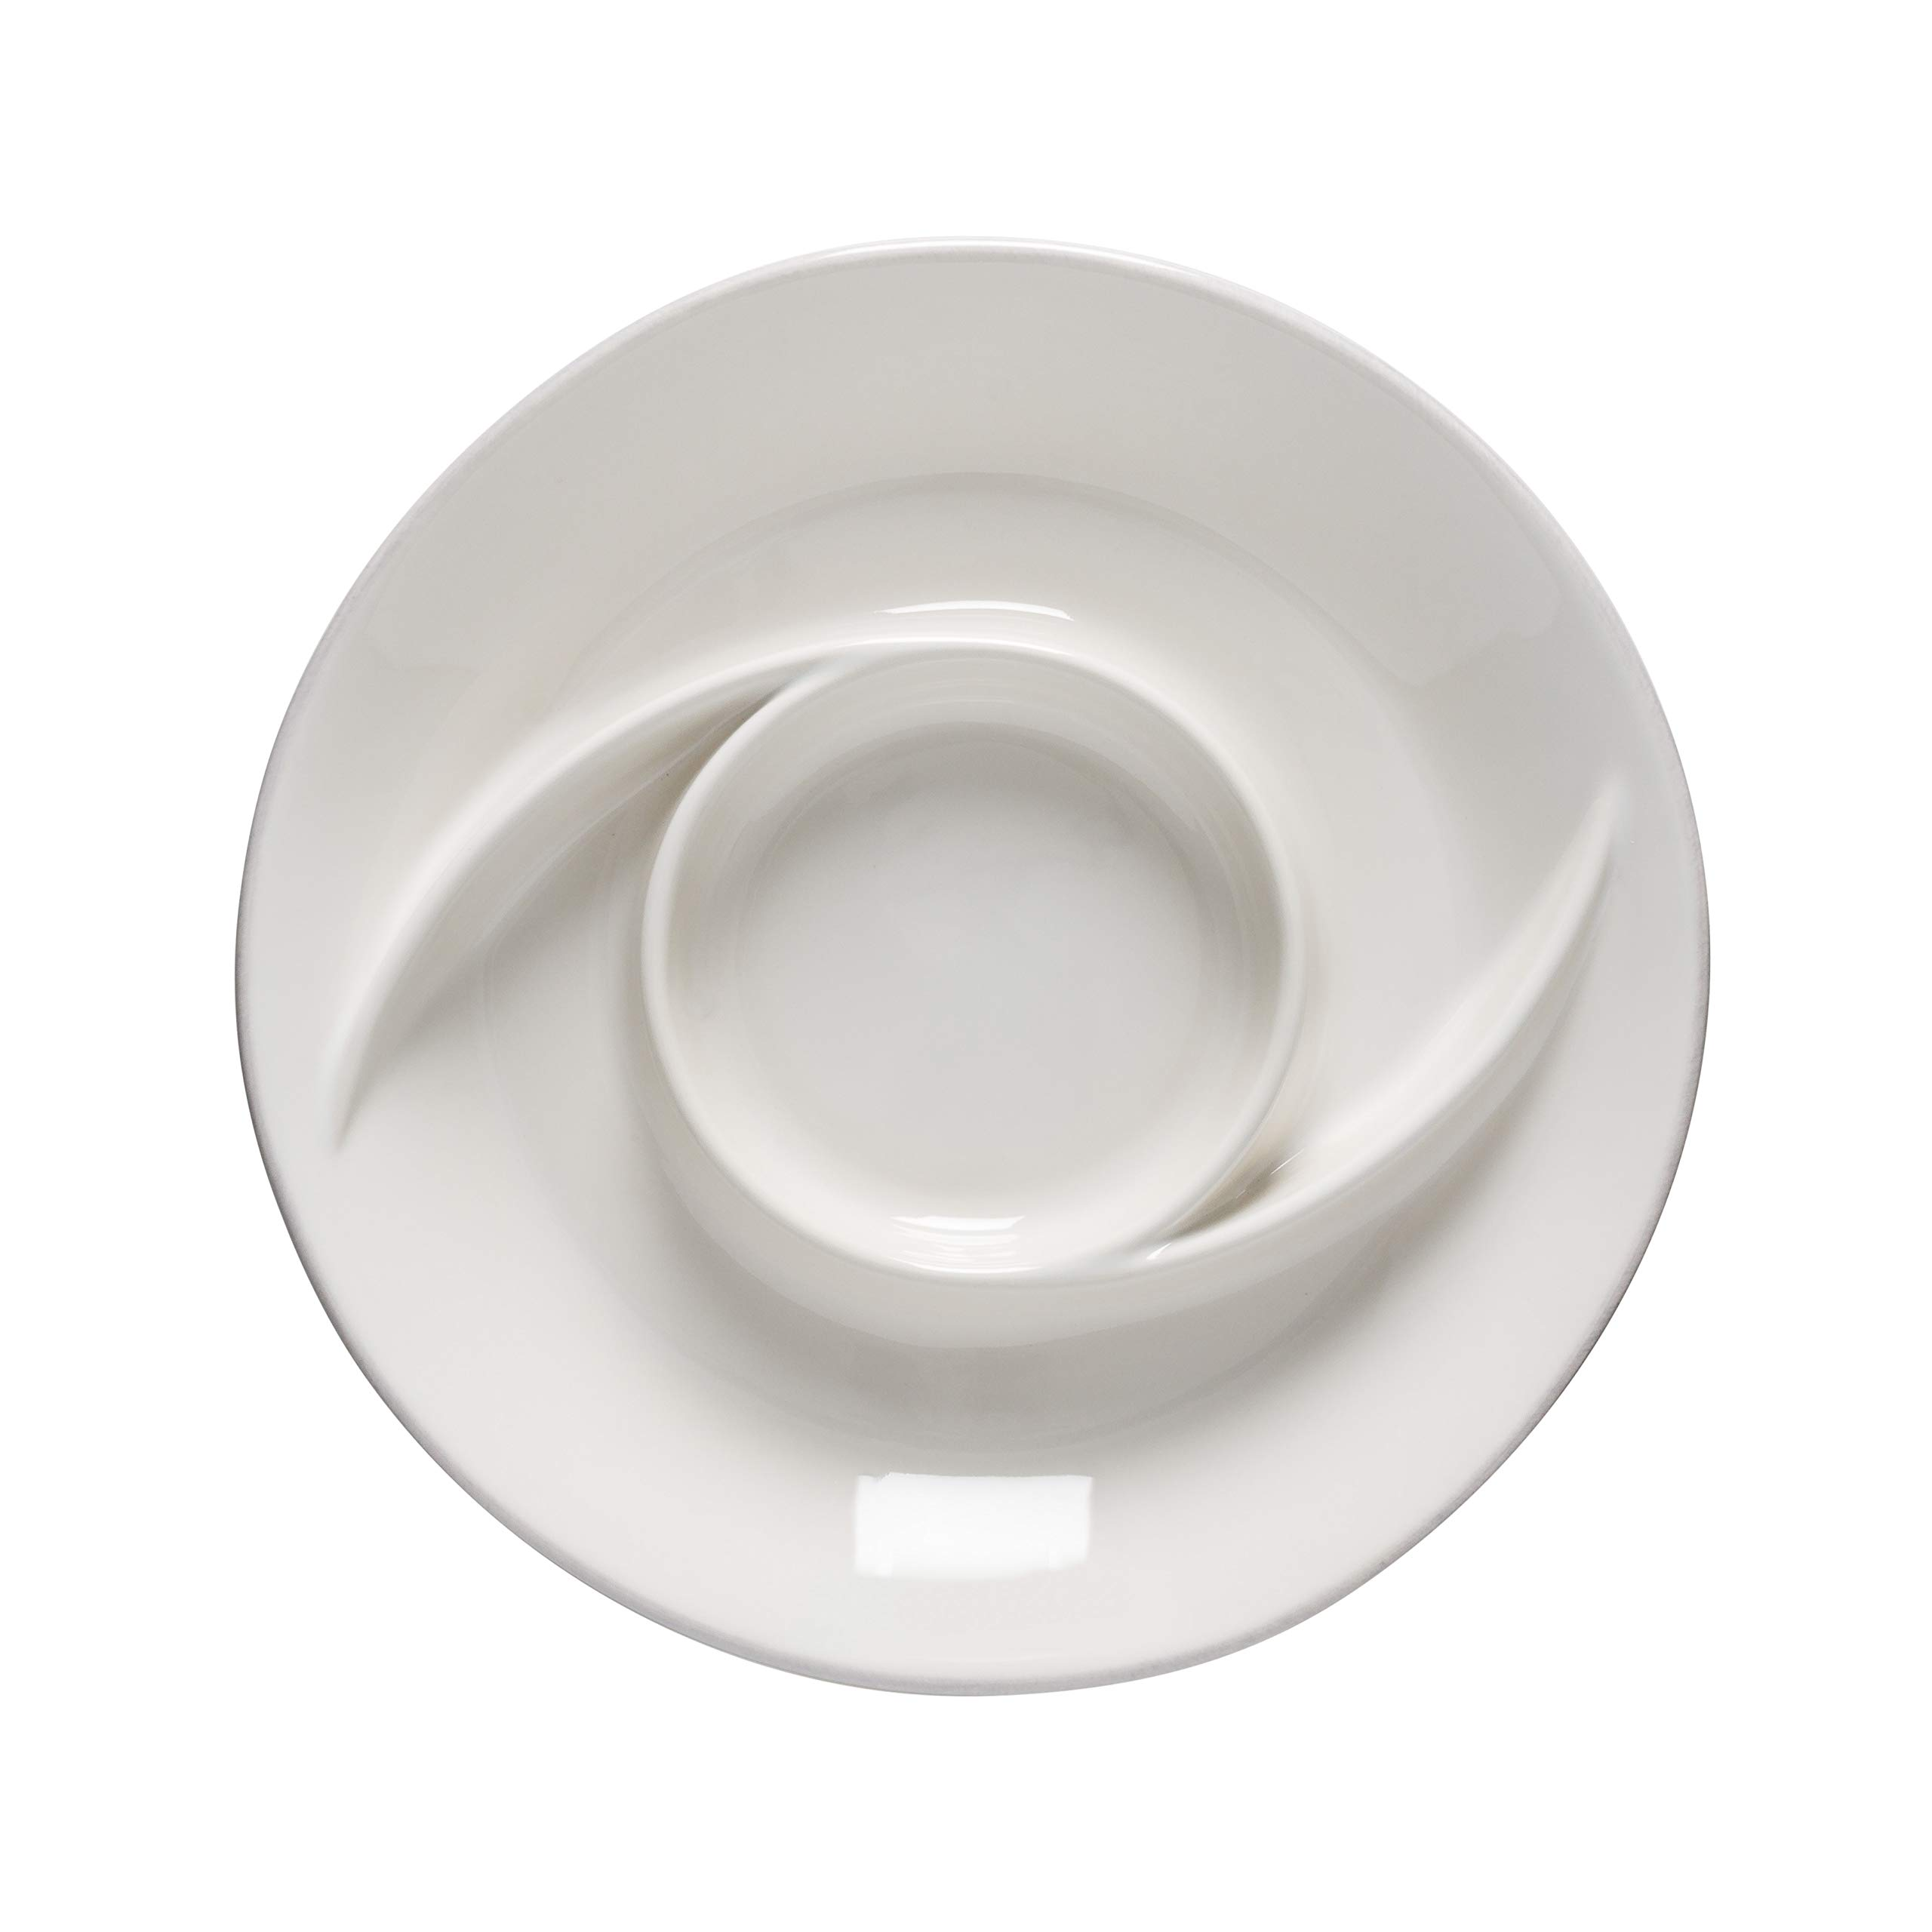 Casafina Cook & Host Collection Stoneware Ceramic Chip & Dip Serving Dish 12.75'' (White)